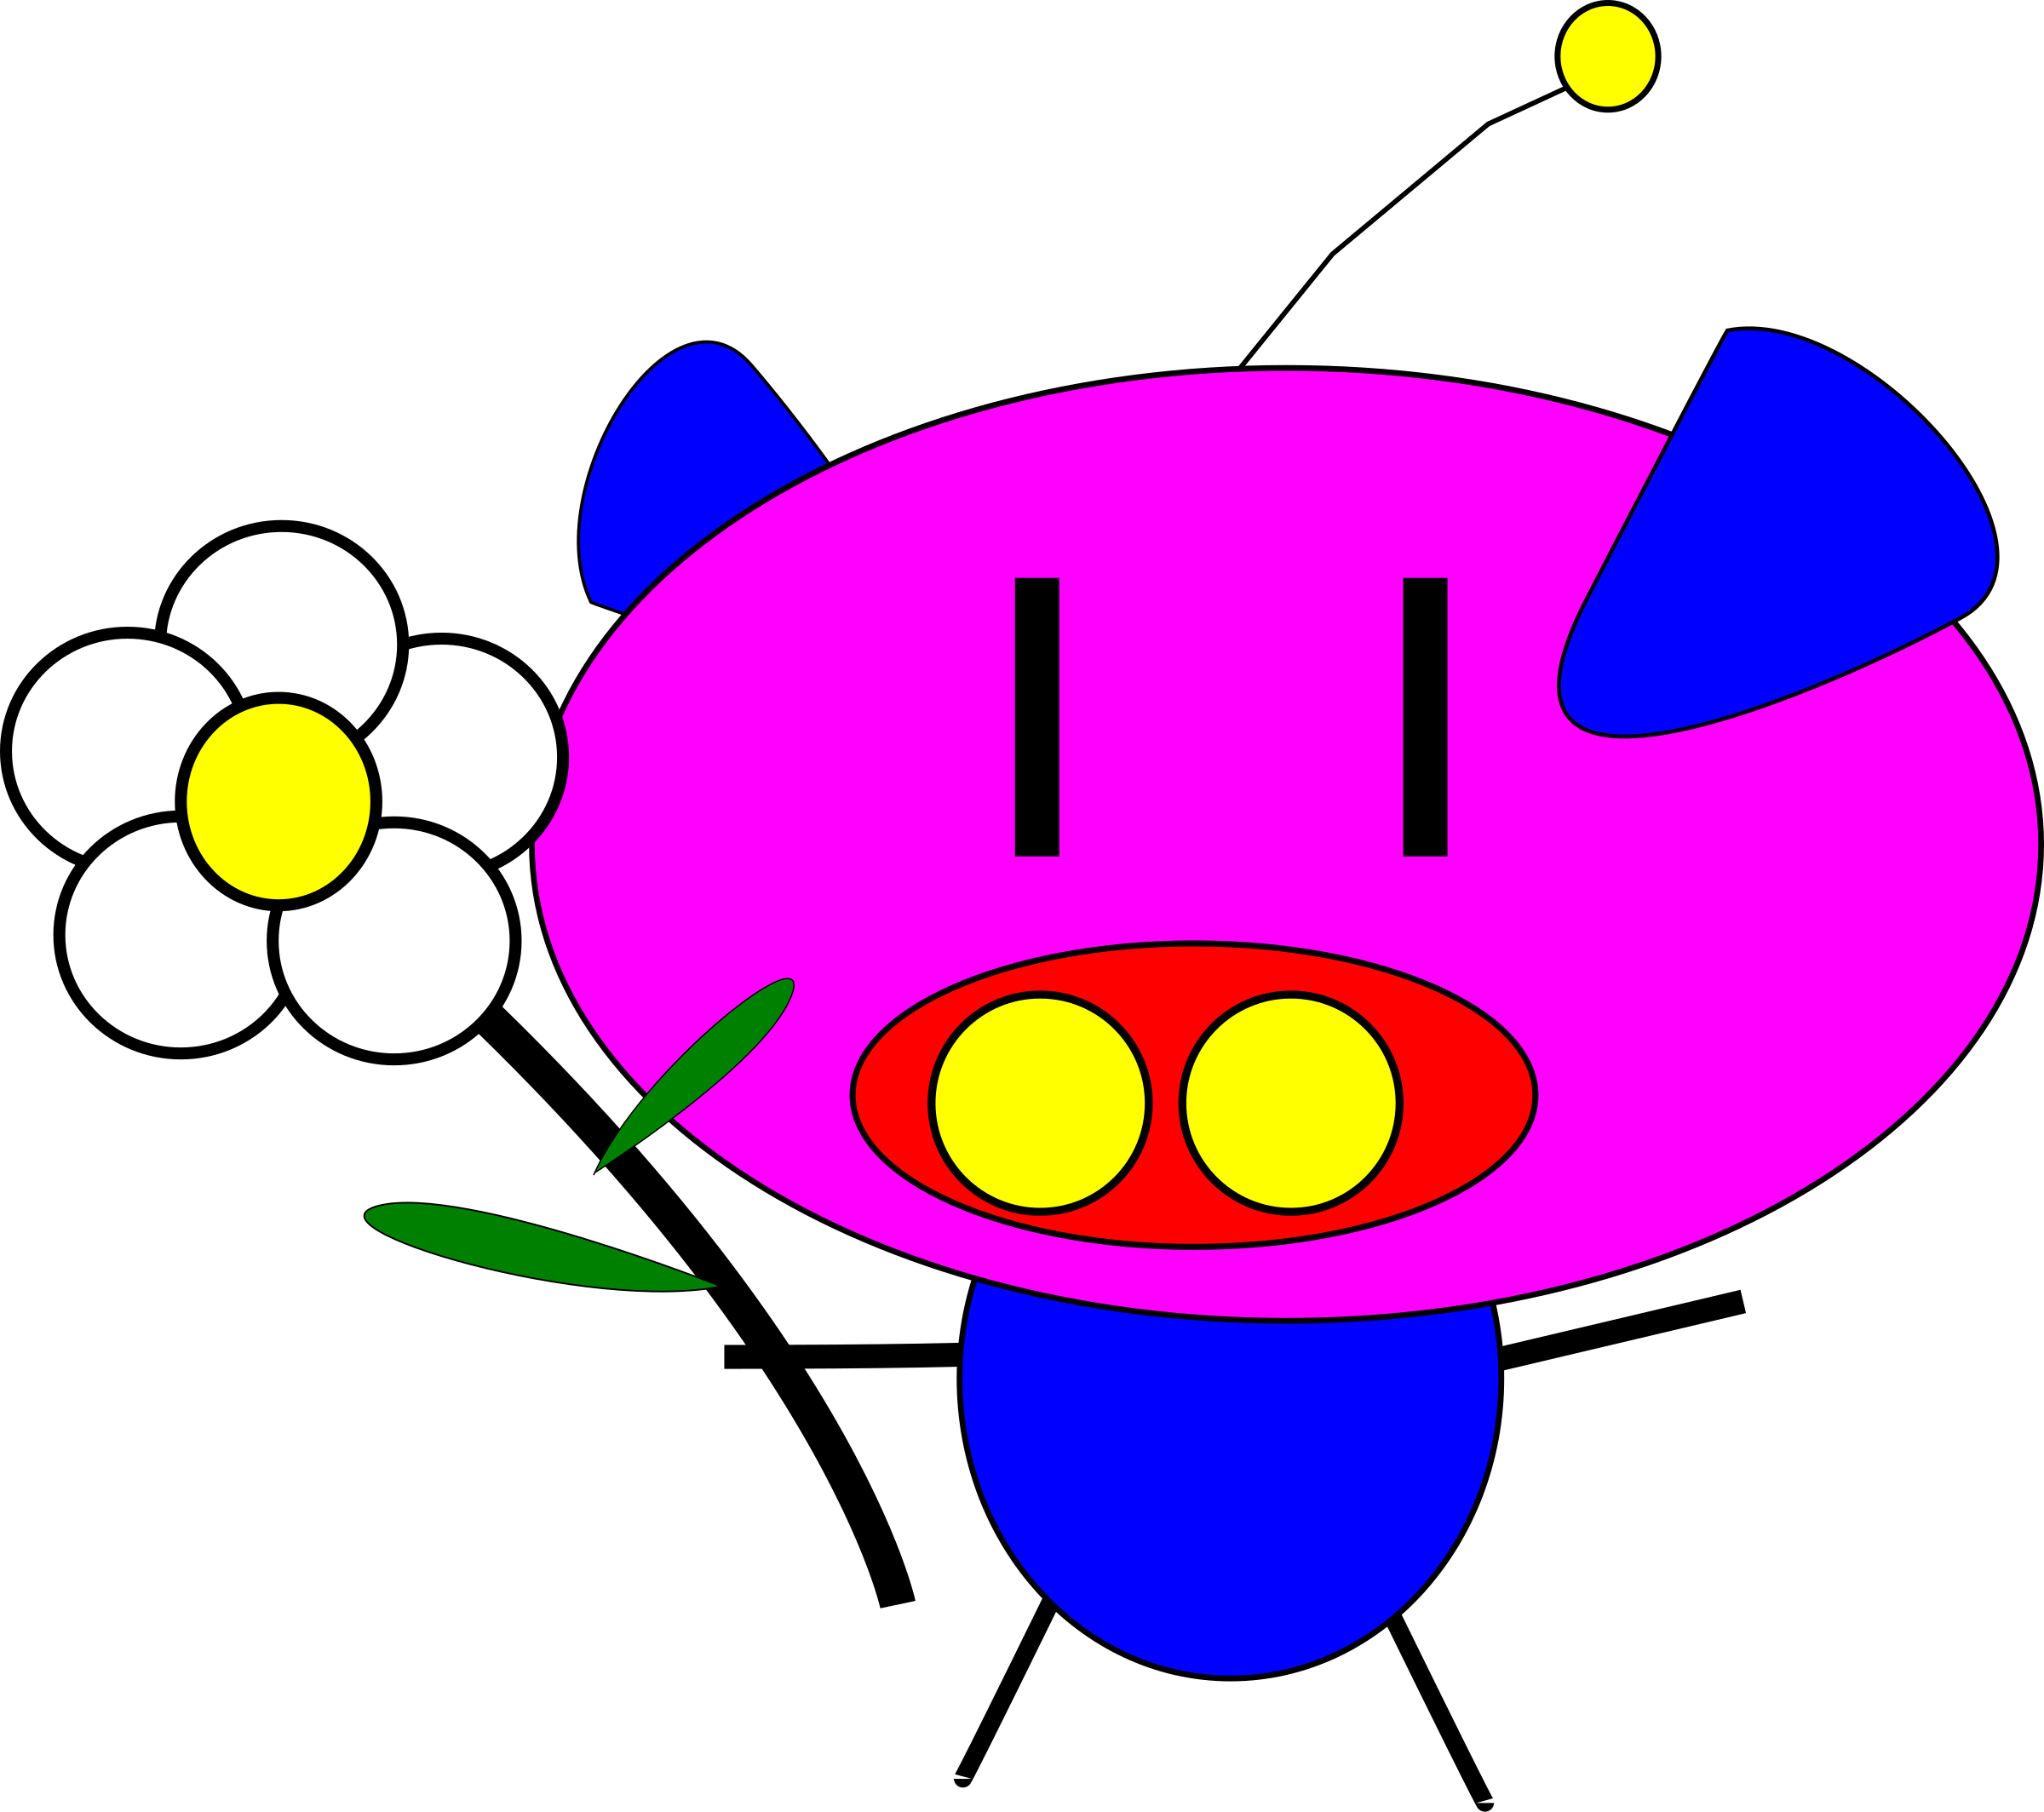 pig pig with flower by lkamming